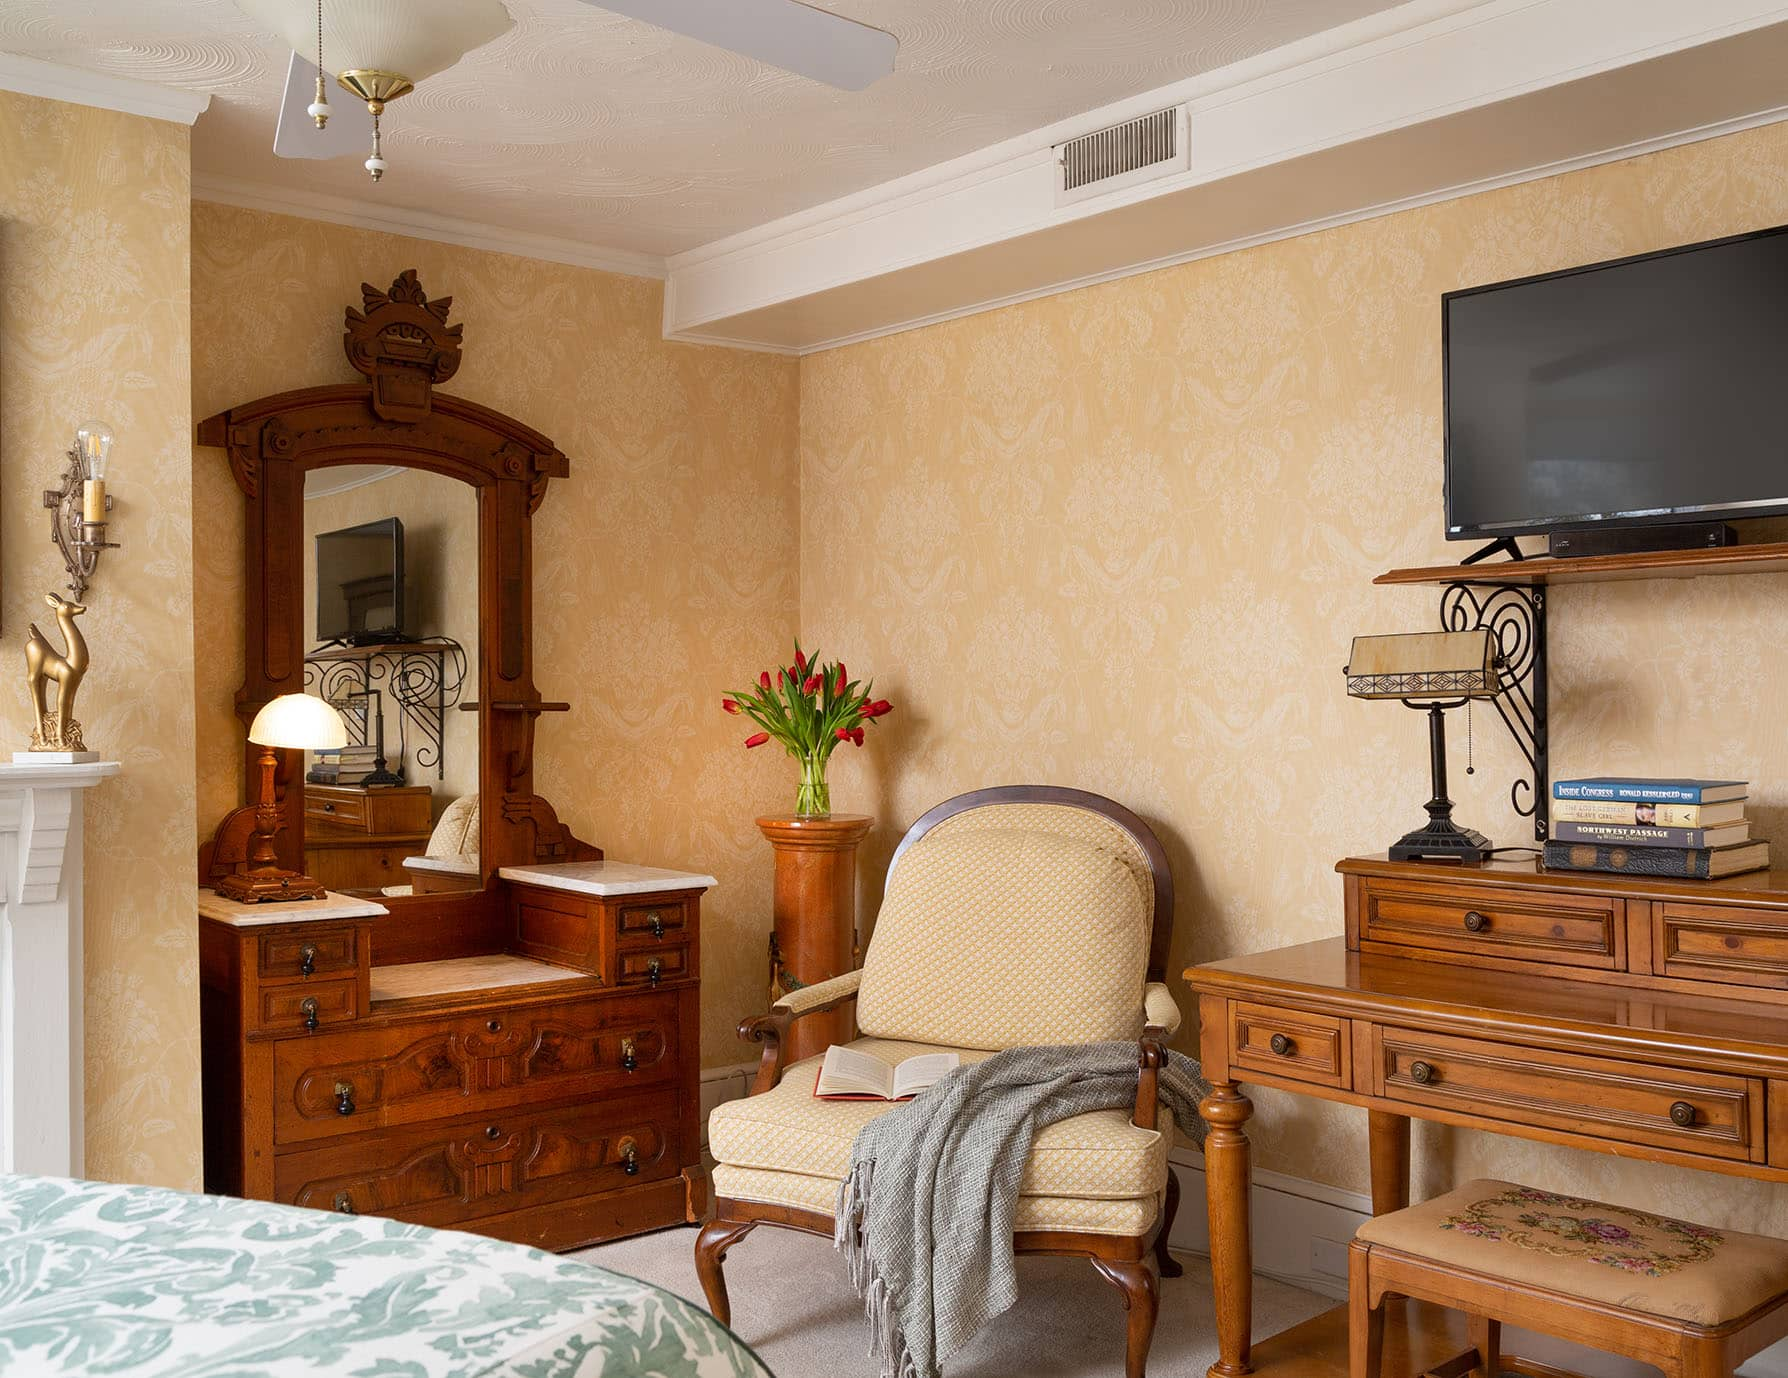 Wooden Cabinet and Chair at Our Roanoke Island Inn